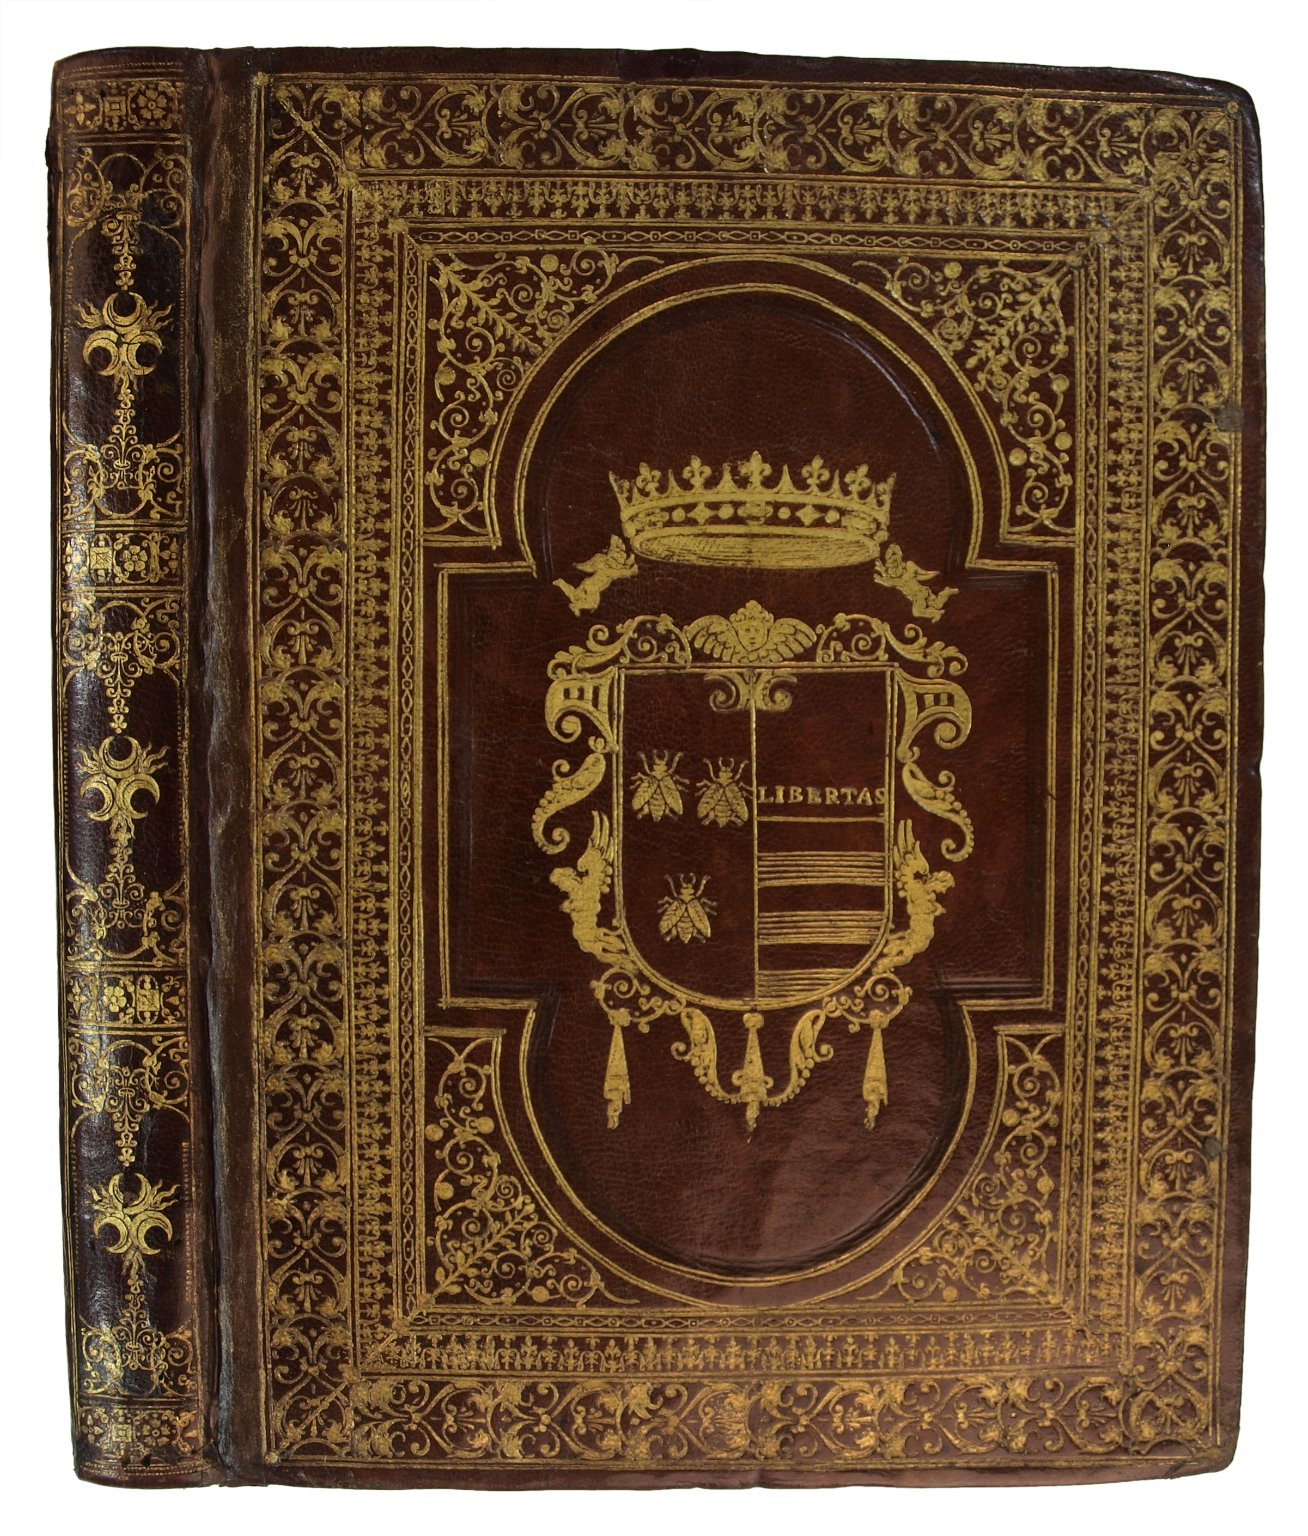 Front cover and spine, 182271.